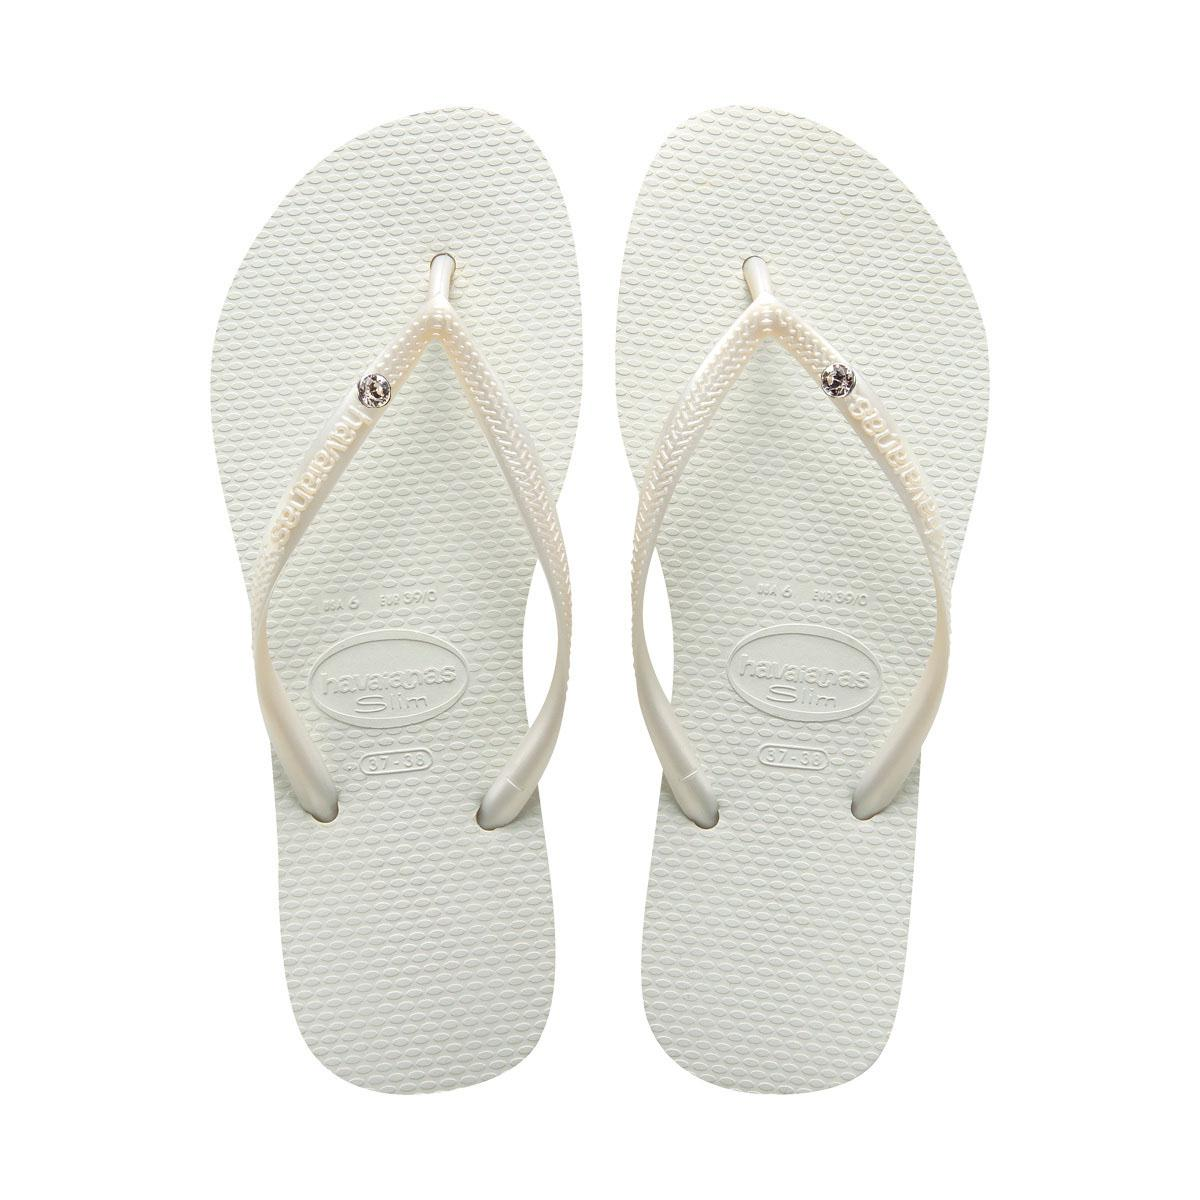 25363bac6 Havaianas Slim Crystal Flip Flops White in White - Lyst